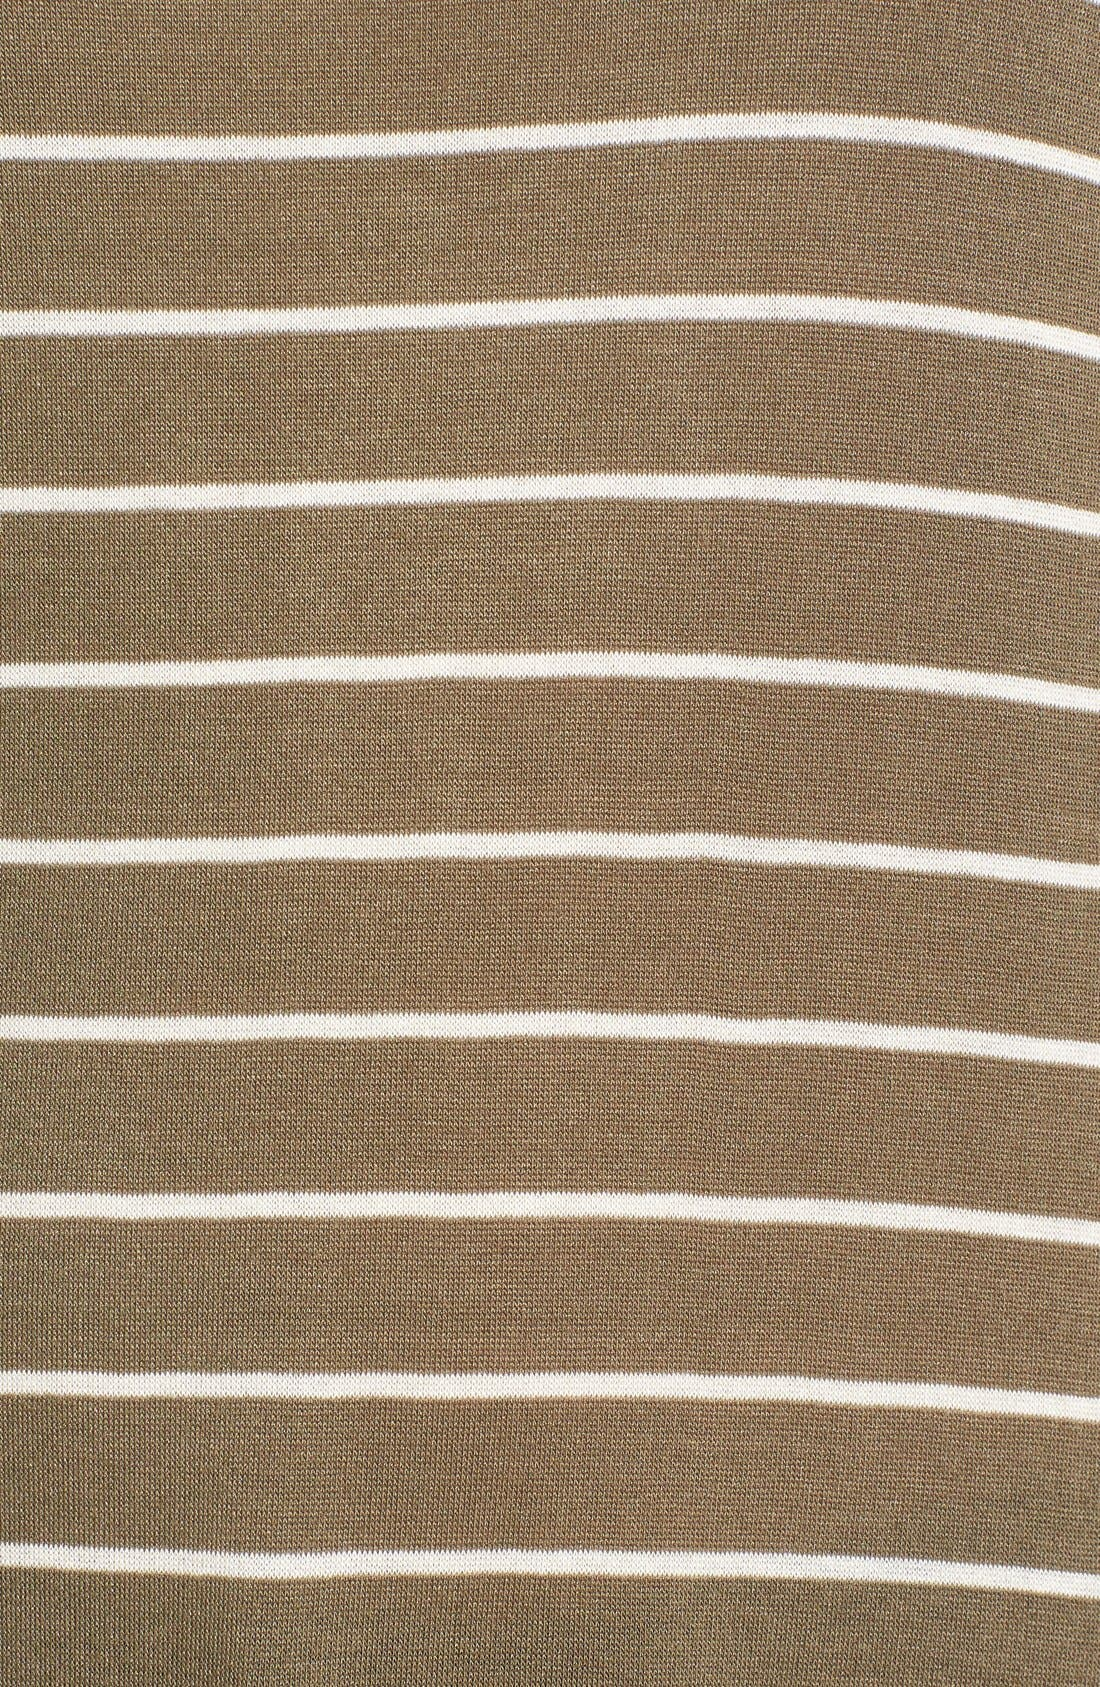 Stripe Long Sleeve Crewneck Tee,                             Alternate thumbnail 5, color,                             315